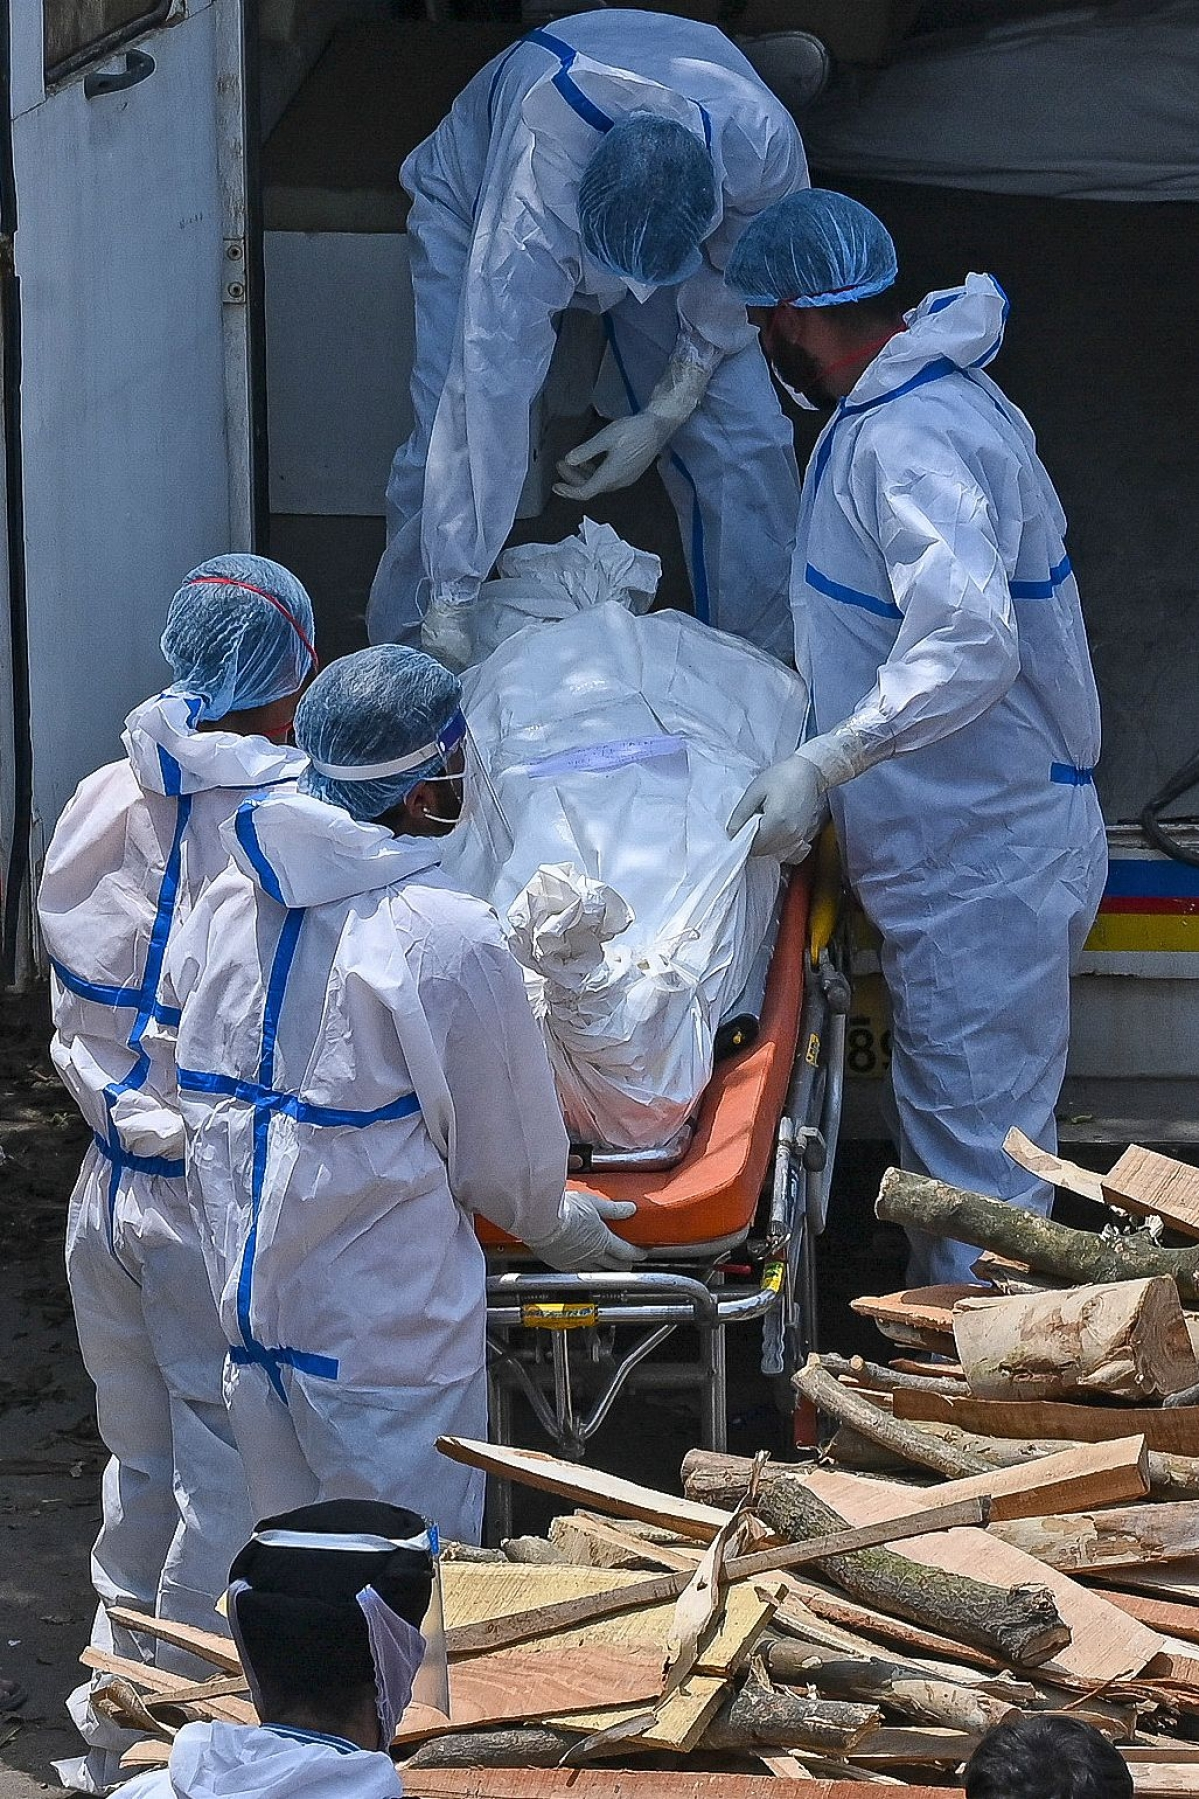 Family members and ambulance workers wearing PPE kits (Personal Protection Equipment) carry the bodies of patients who died of the Covid-19 coronavirus during mass cremation held at a crematorium in New Delhi on April 27, 2021.